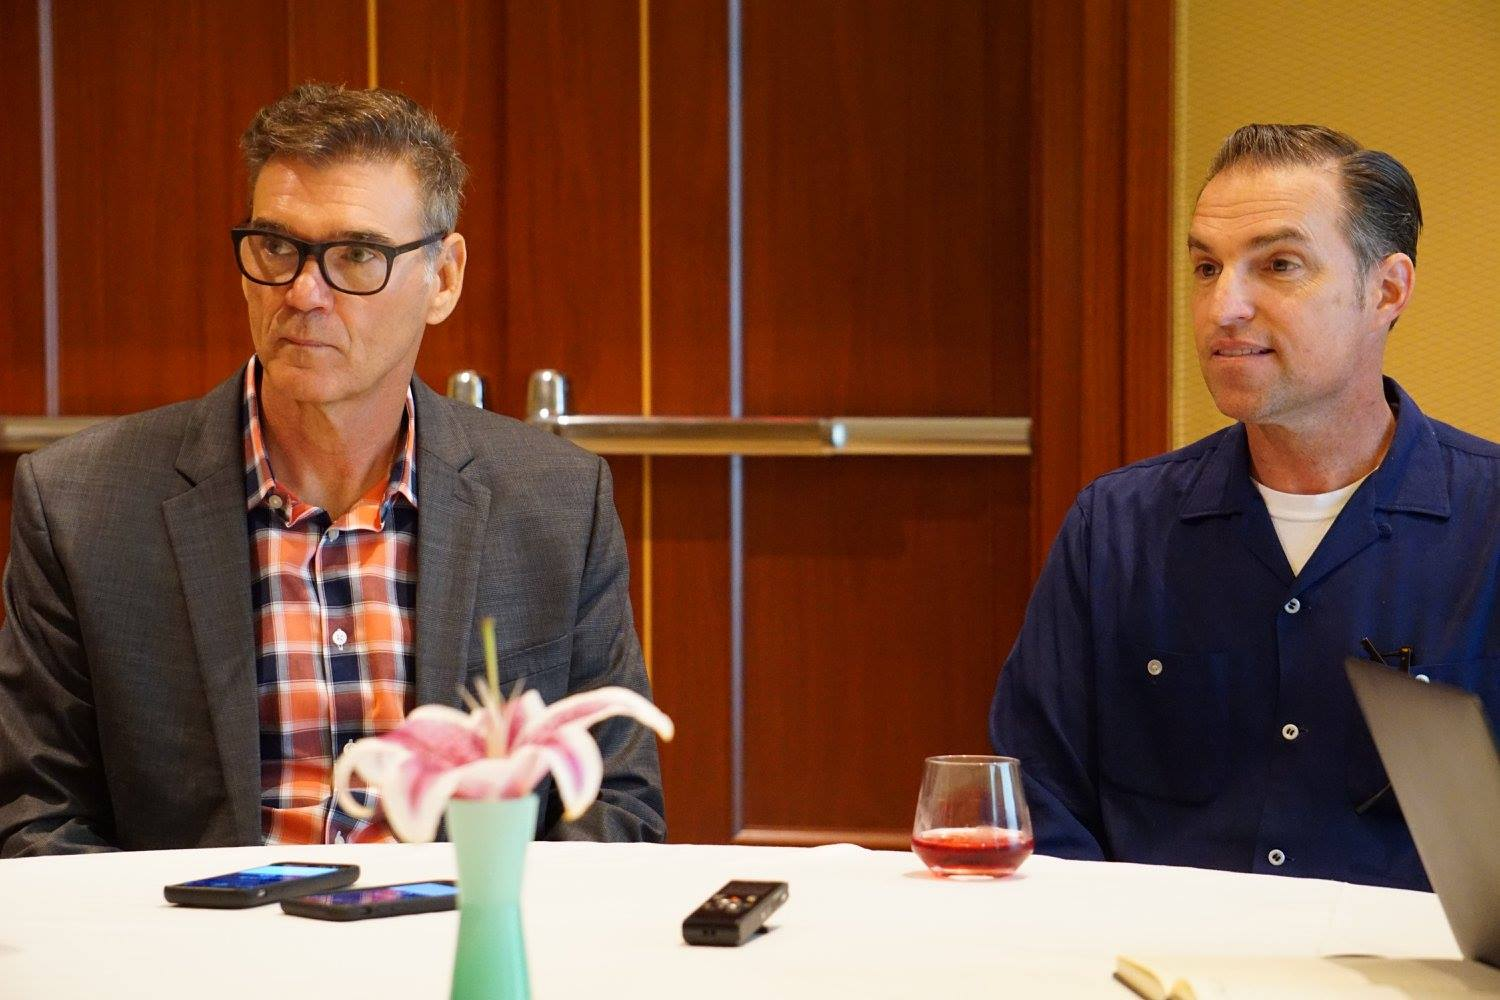 Interview with Disney PIXAR CARS 3 Creative Director Jay Ward, and actor Ray Evernham